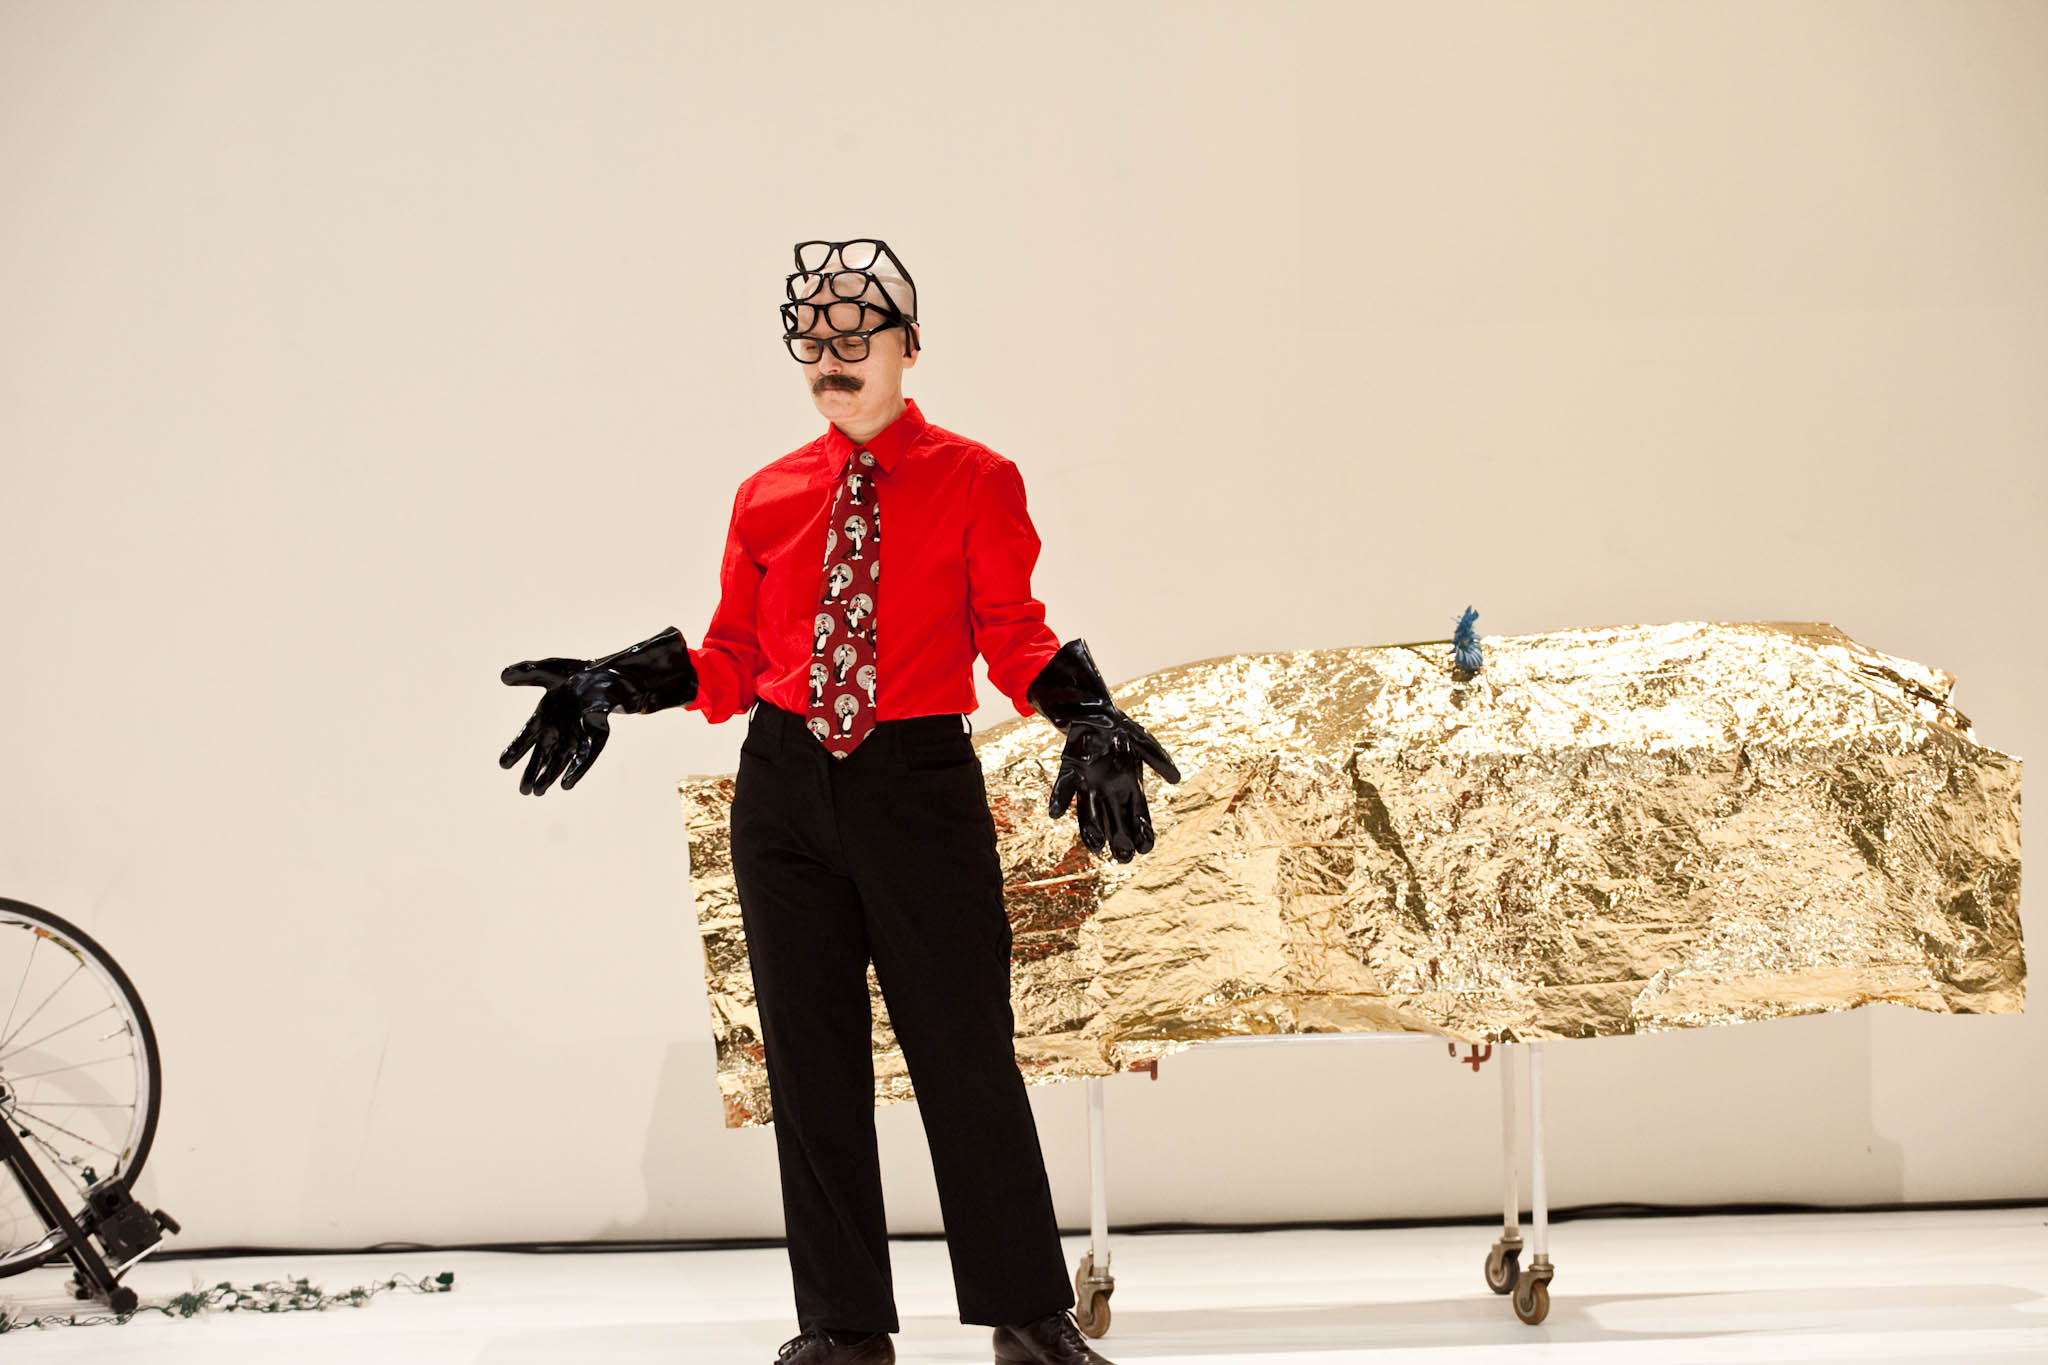 Markland, in 4 stacked eyeglasses and black rubber gloves, gestures before the gold-draped gurney. (photo: Sven Hagolani)